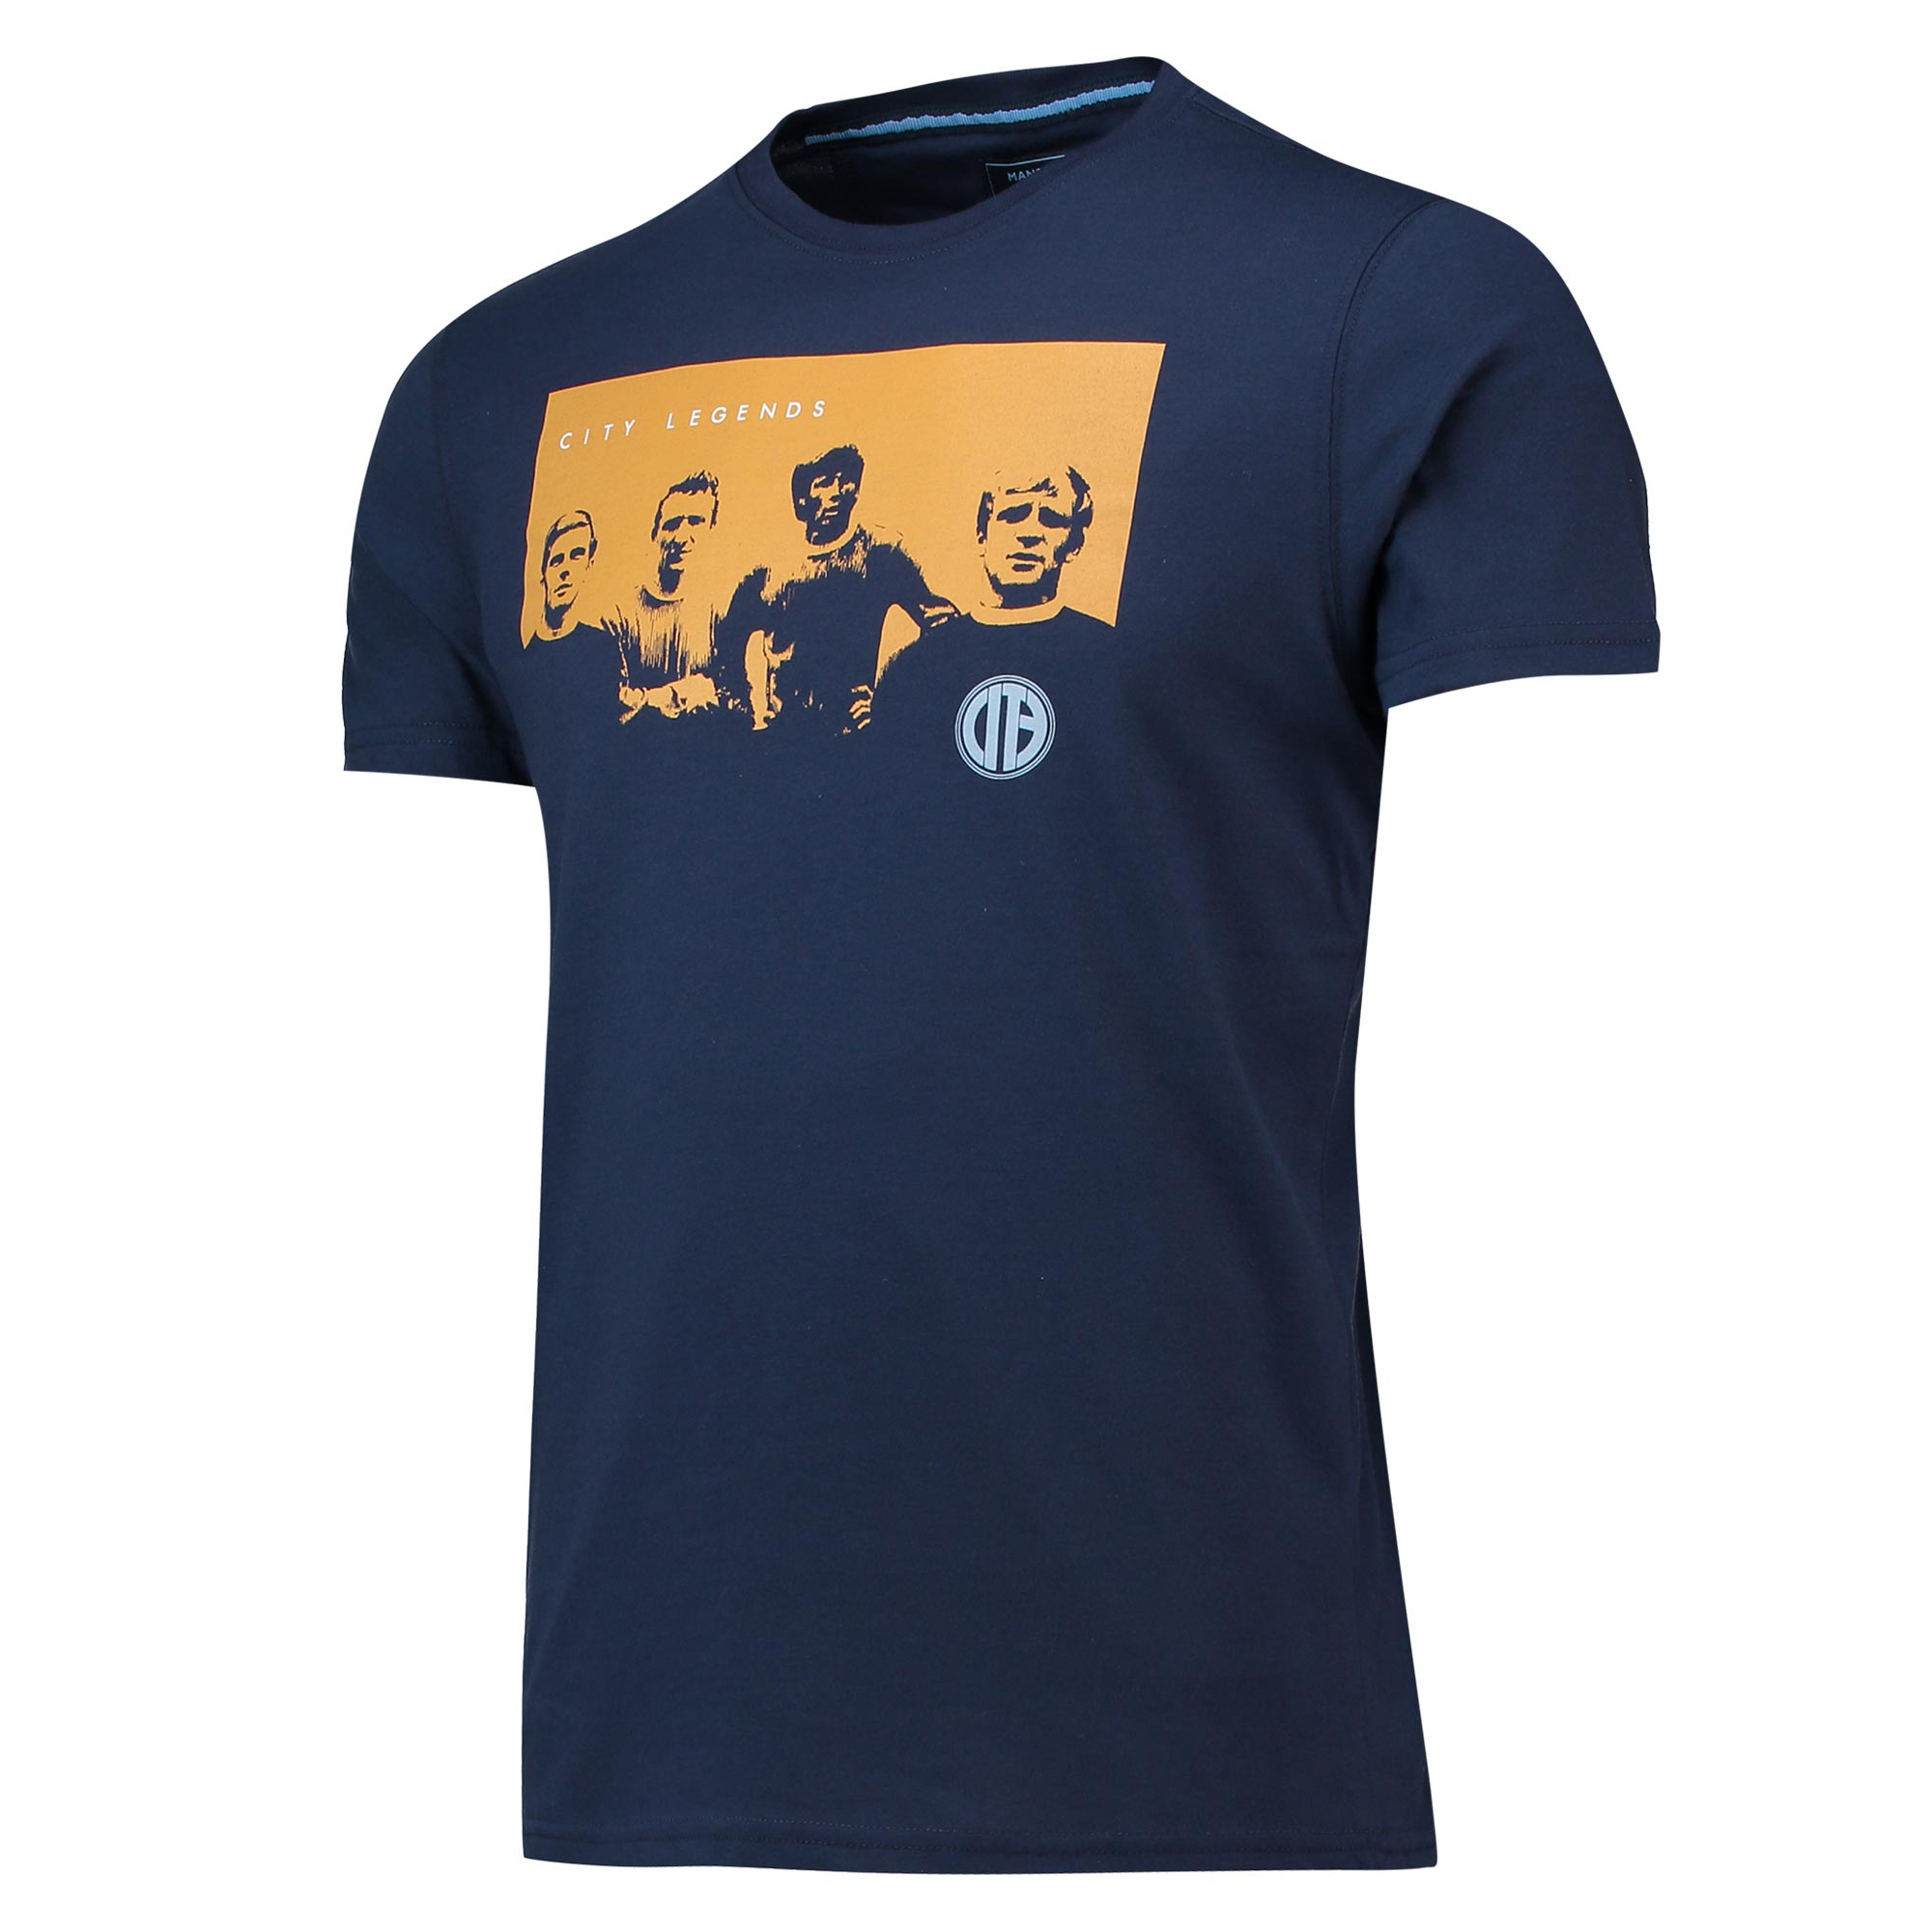 Camiseta City Legends Terrace del Manchester City en azul marino para hombre